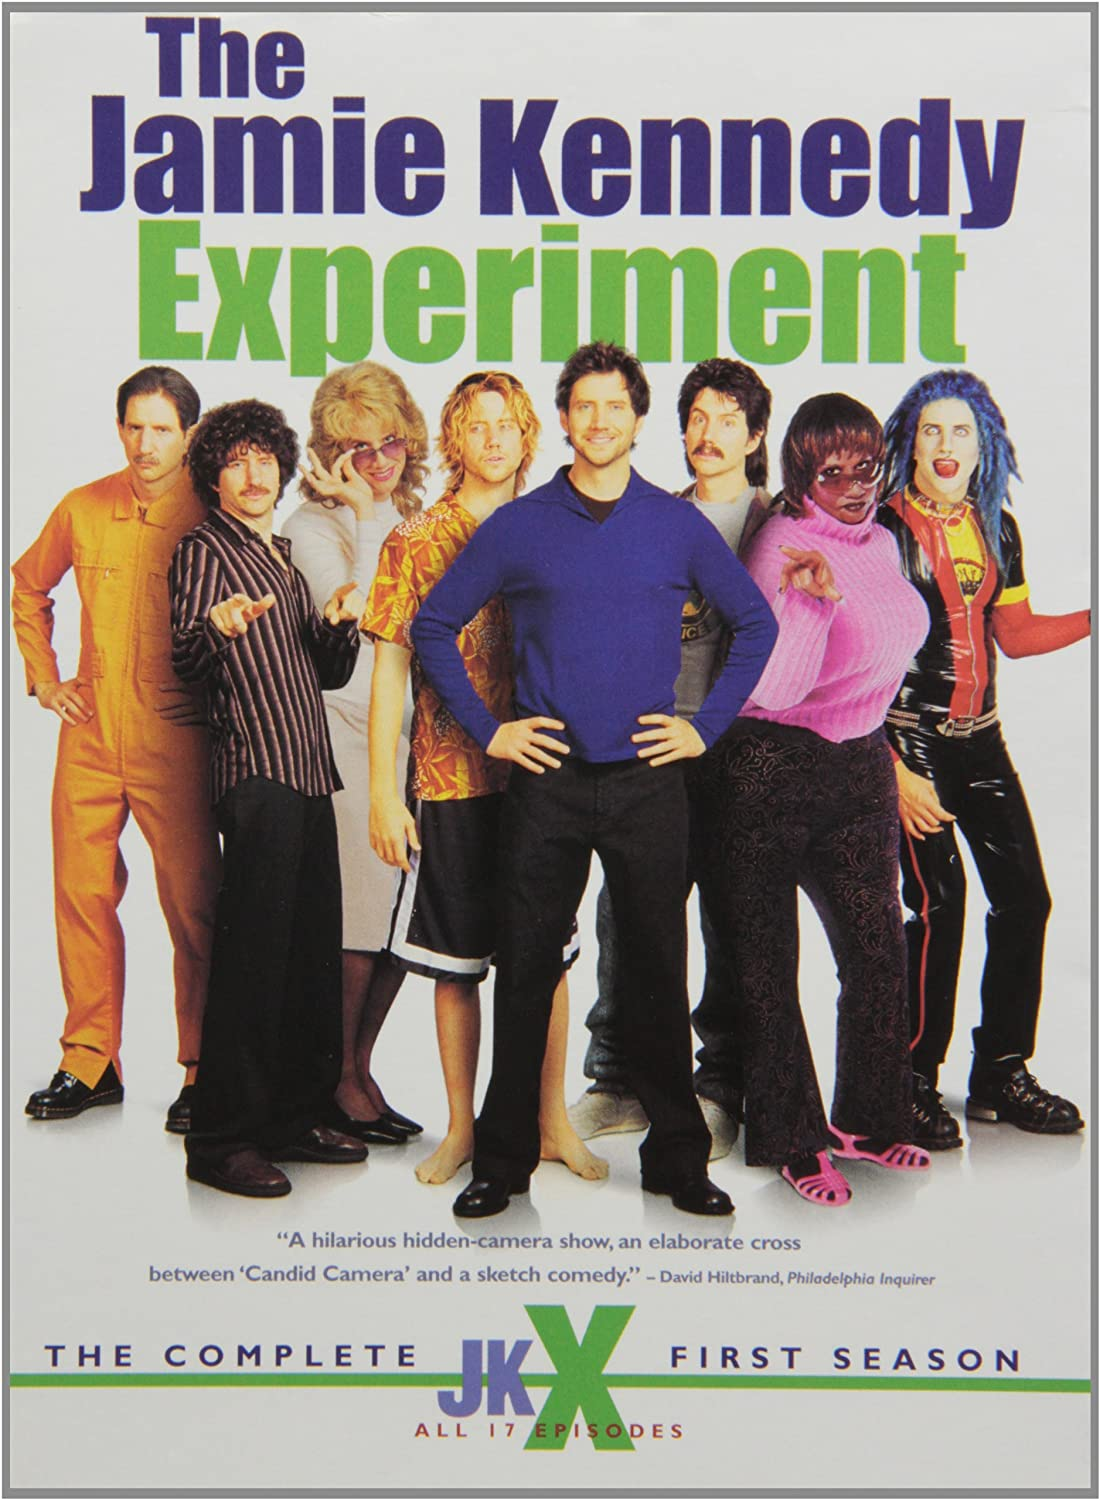 Amazon.com: The Jamie Kennedy Experiment - The Complete First & Second Seasons: Movies & TV